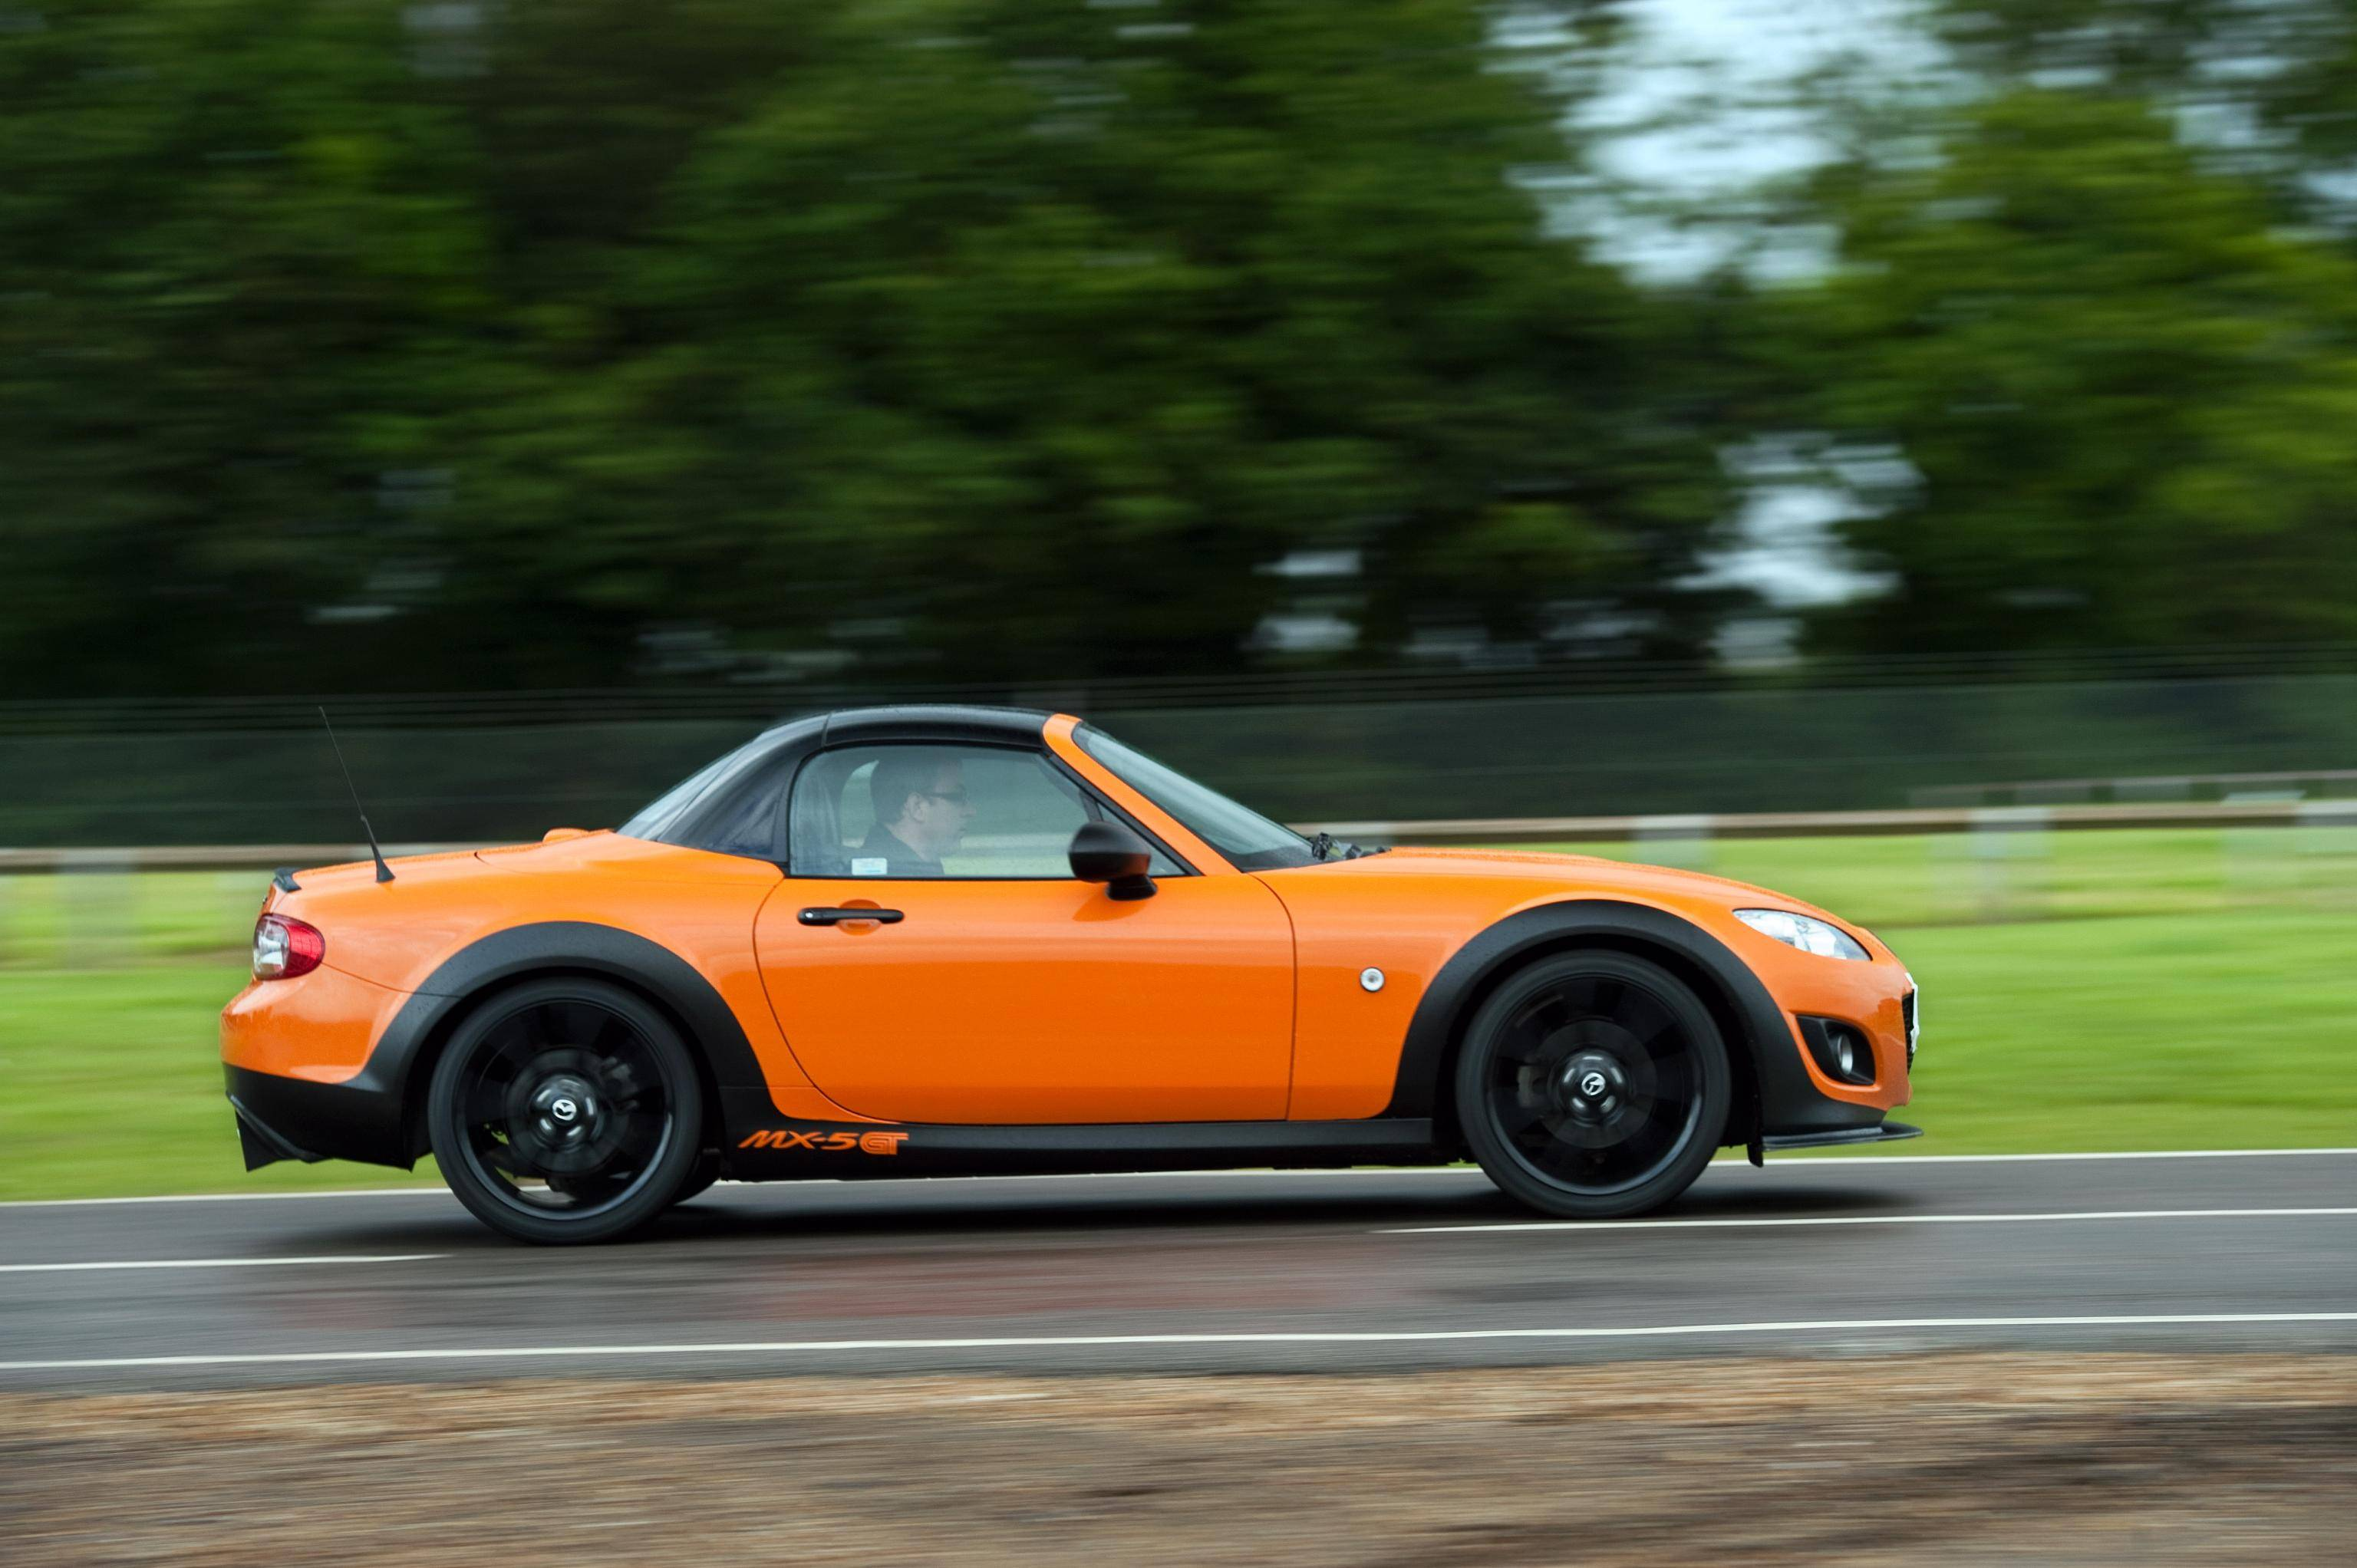 http://www.motoringchat.com/wp-content/uploads/2012/06/Mazda-MX-5-GT-Concept-to-run-at-Goodwood-Festival-Speed.jpg